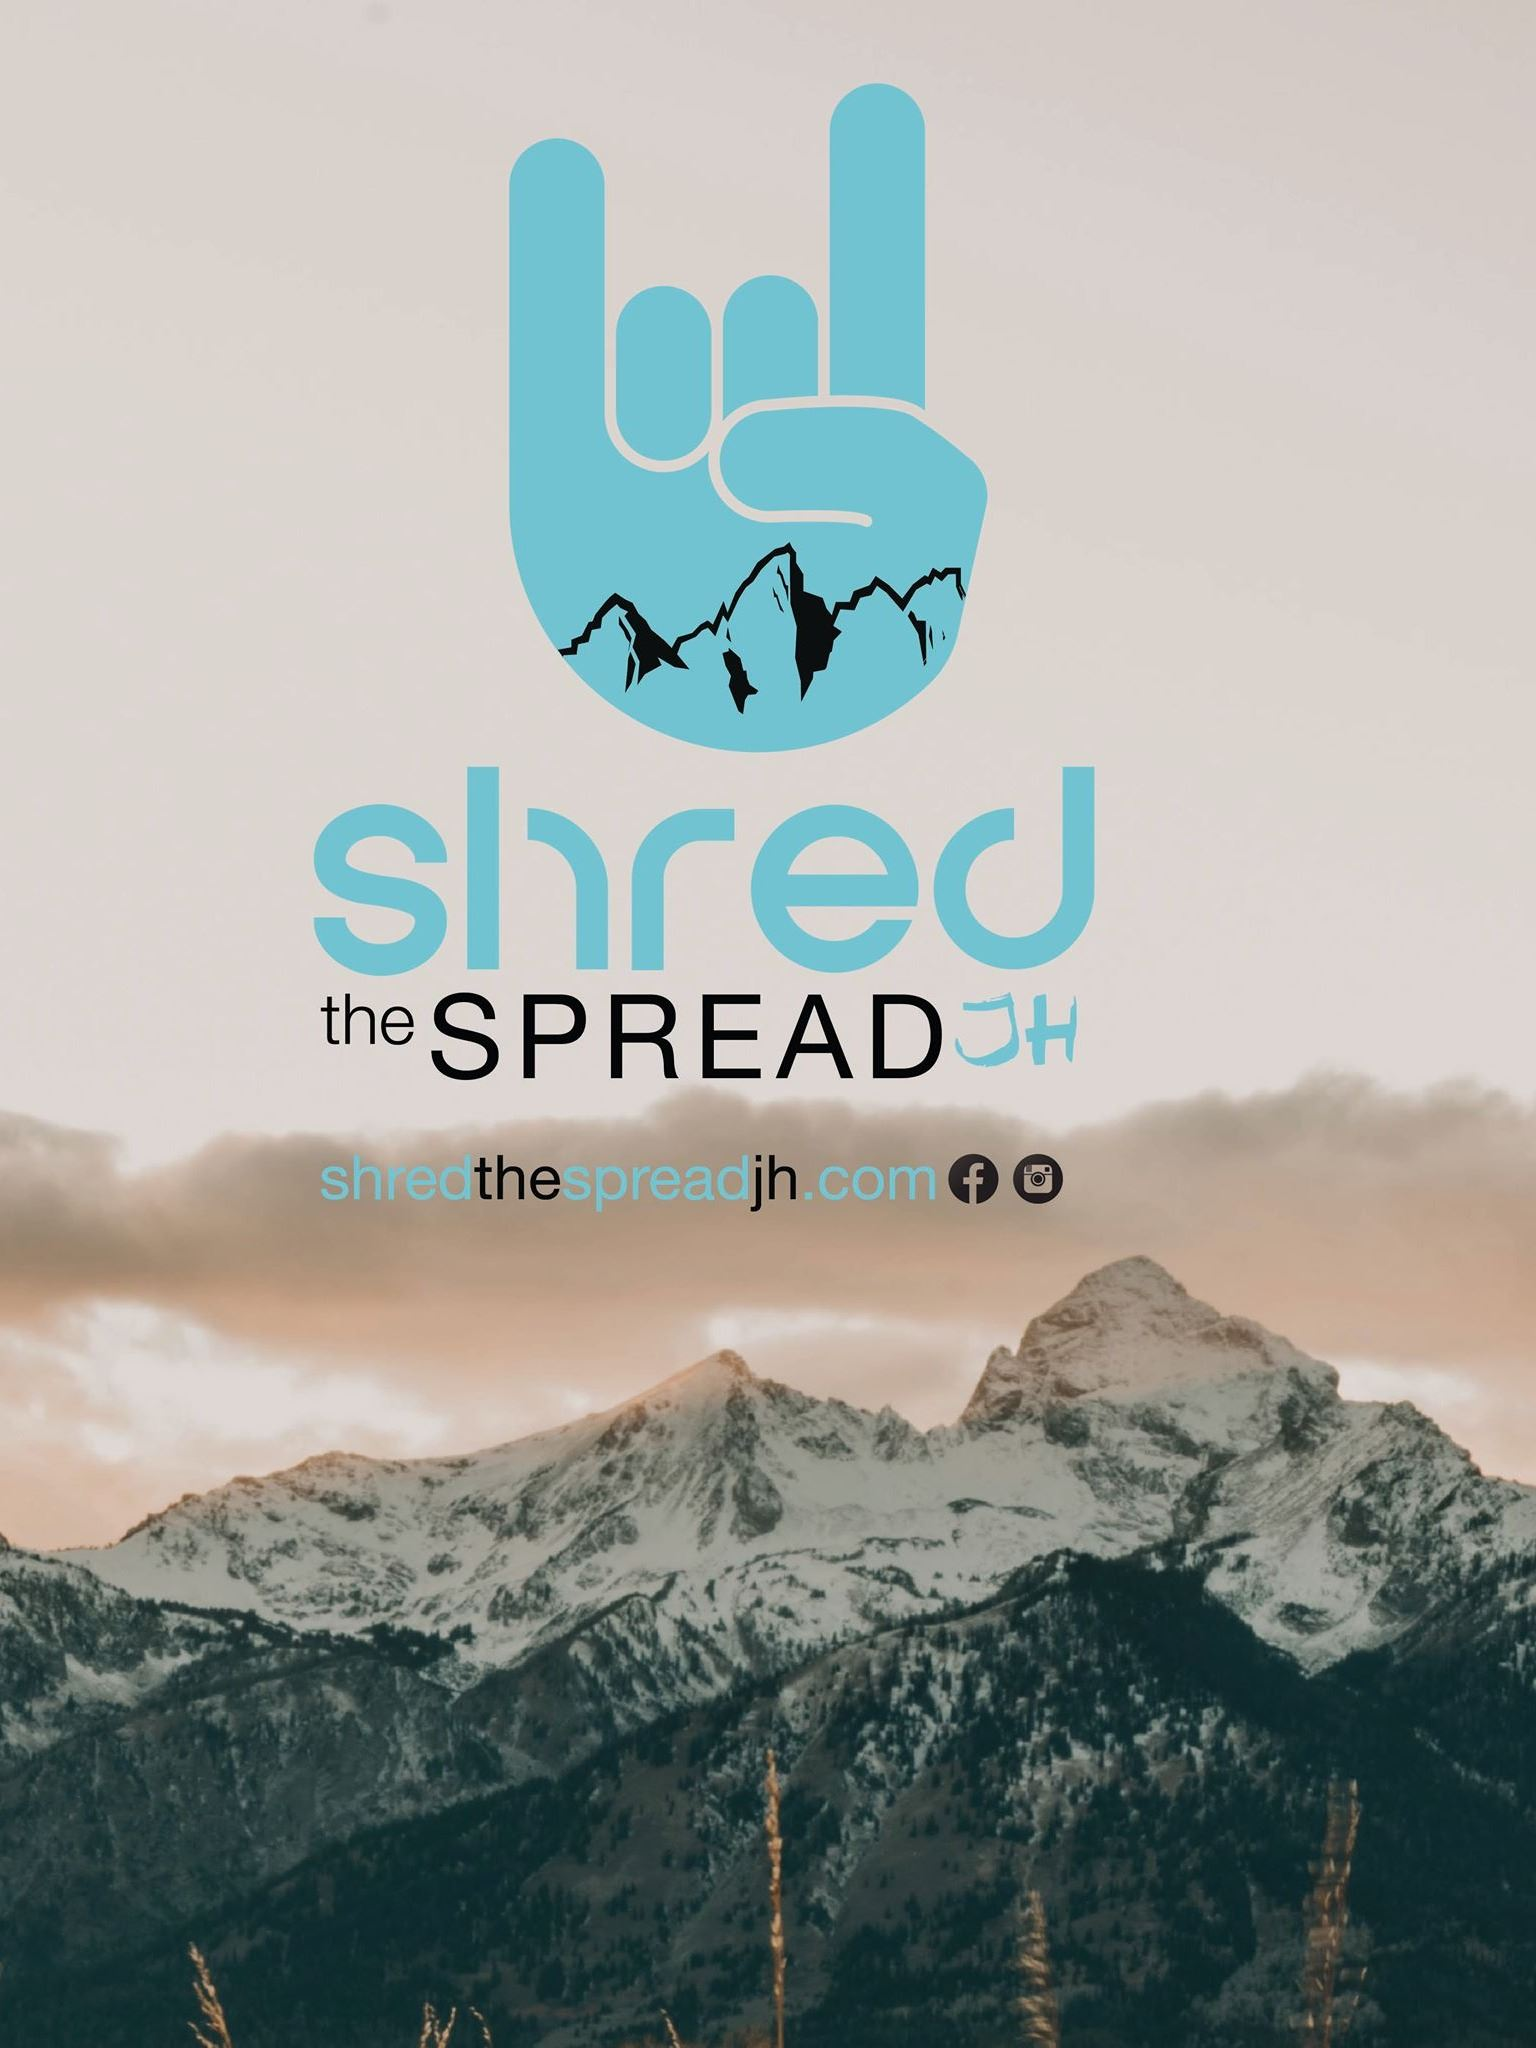 Shred the Spread